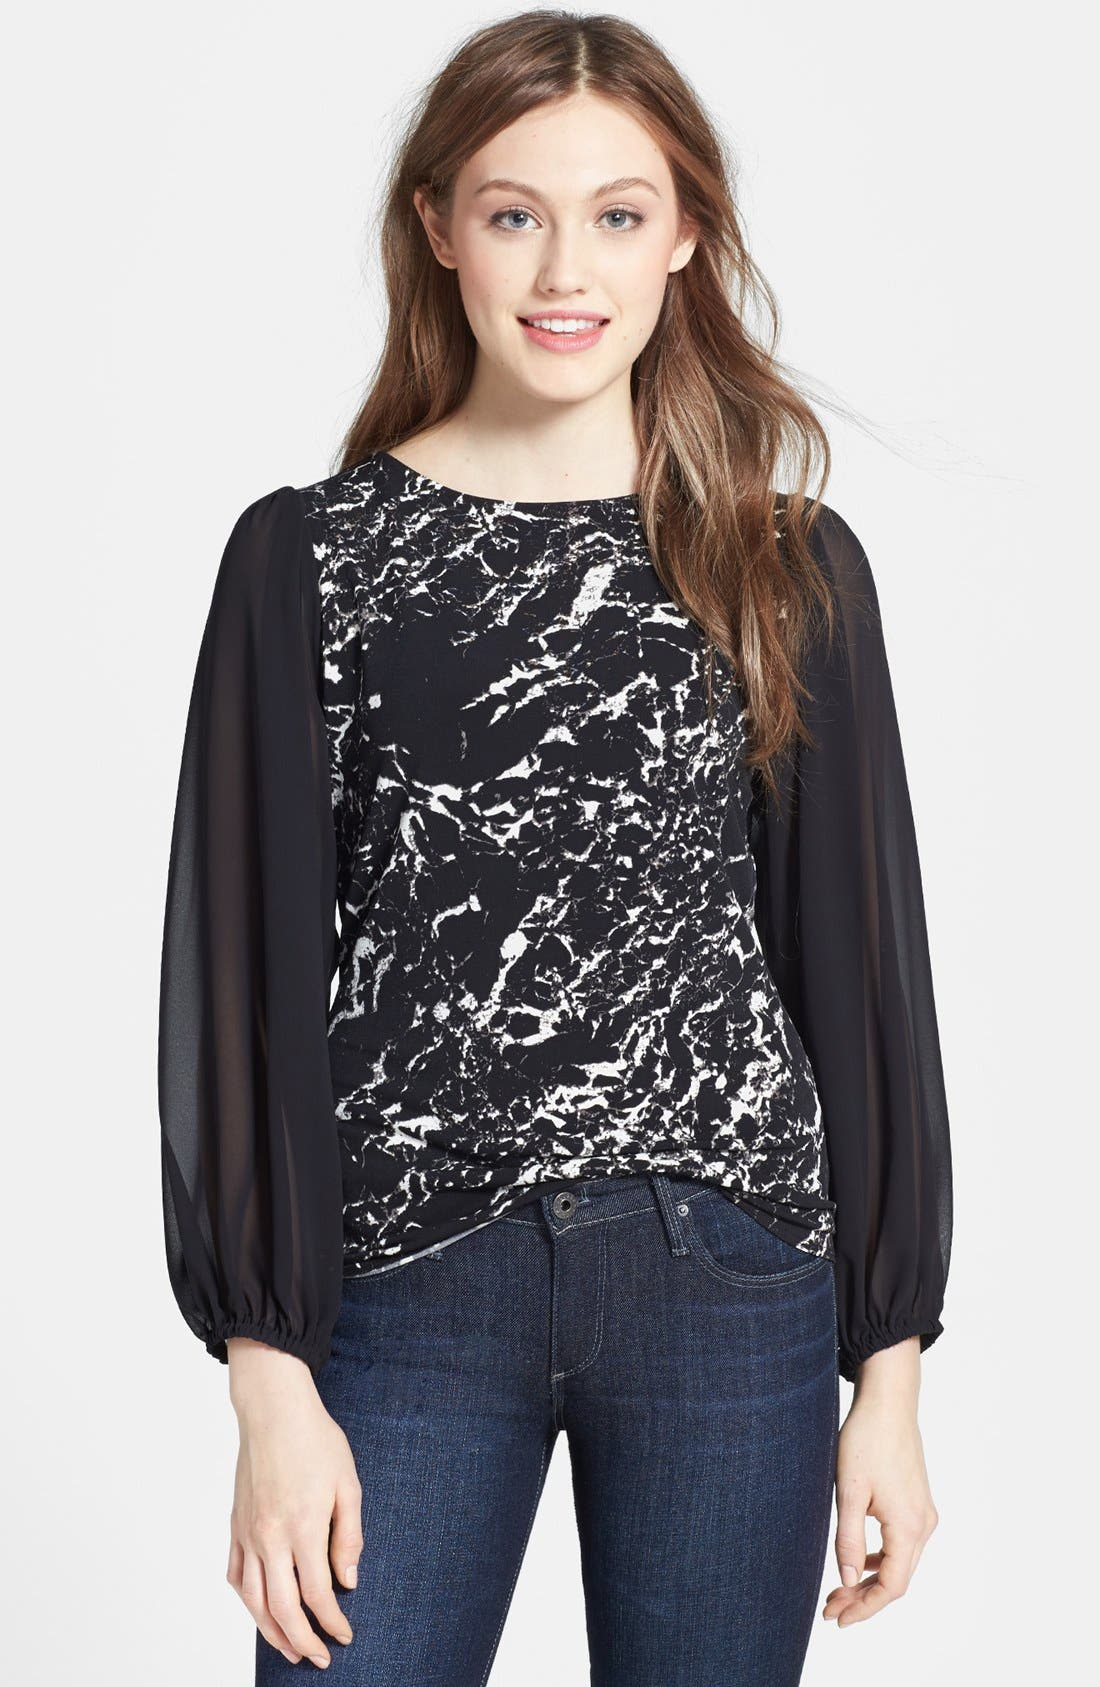 Alternate Image 1 Selected - Vince Camuto Marble Print Chiffon Sleeve Knit Top